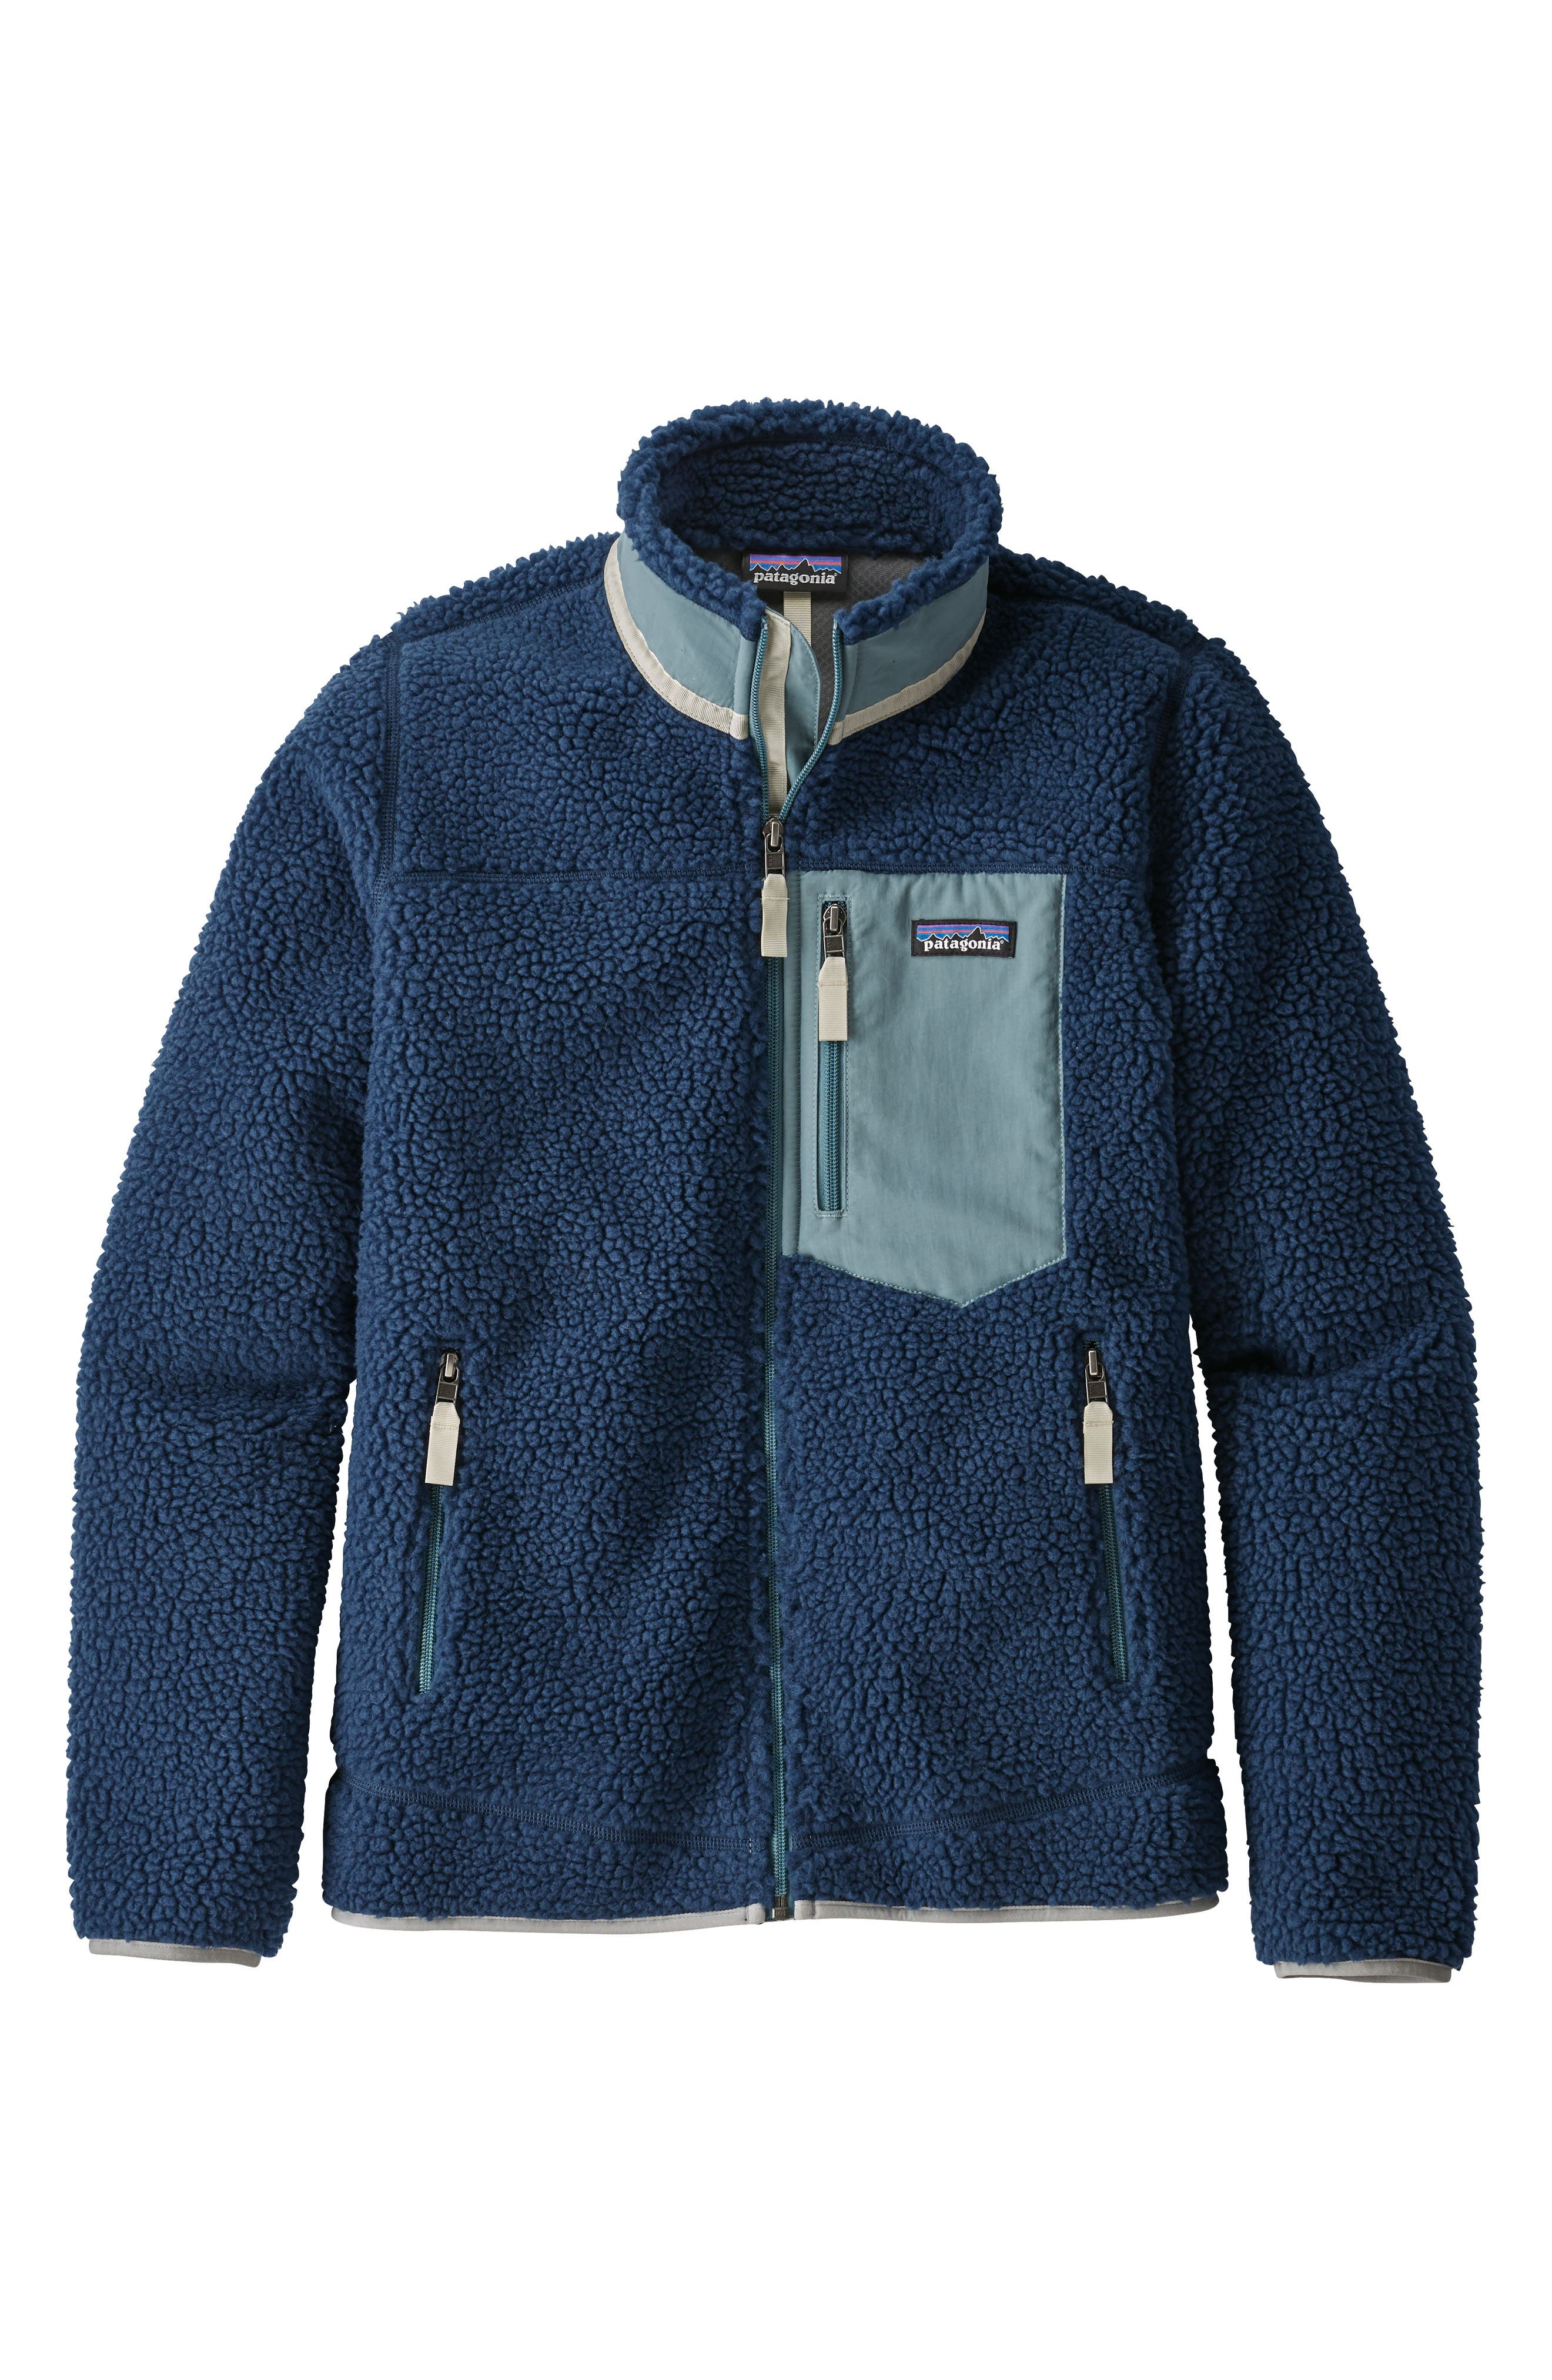 Patagonia Classic Retro-X Fleece Jacket, Blue